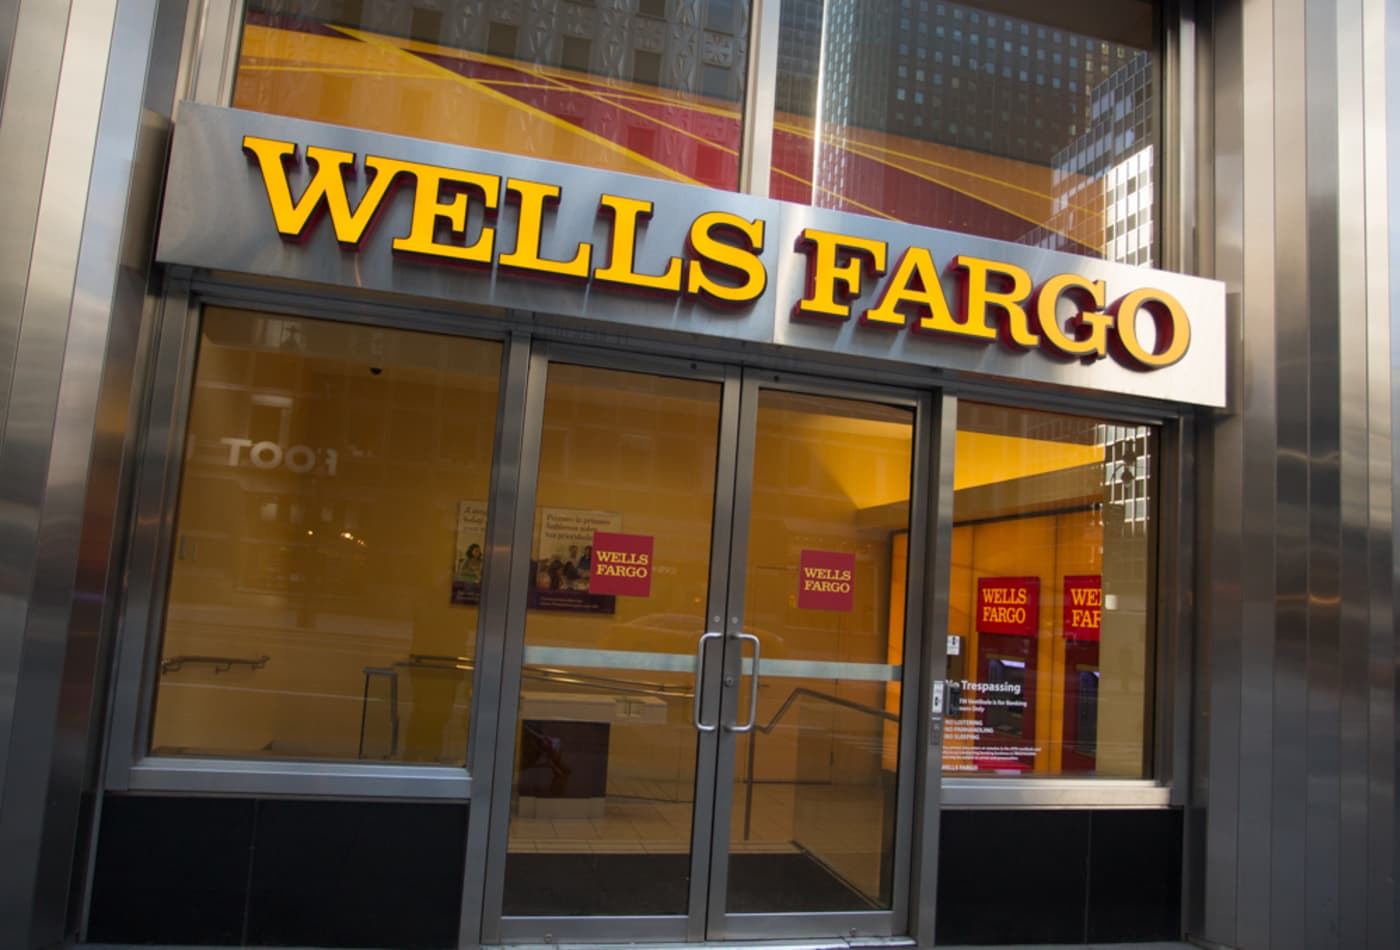 Wells Fargo agrees to pay $1 billion to settle over loan abuses